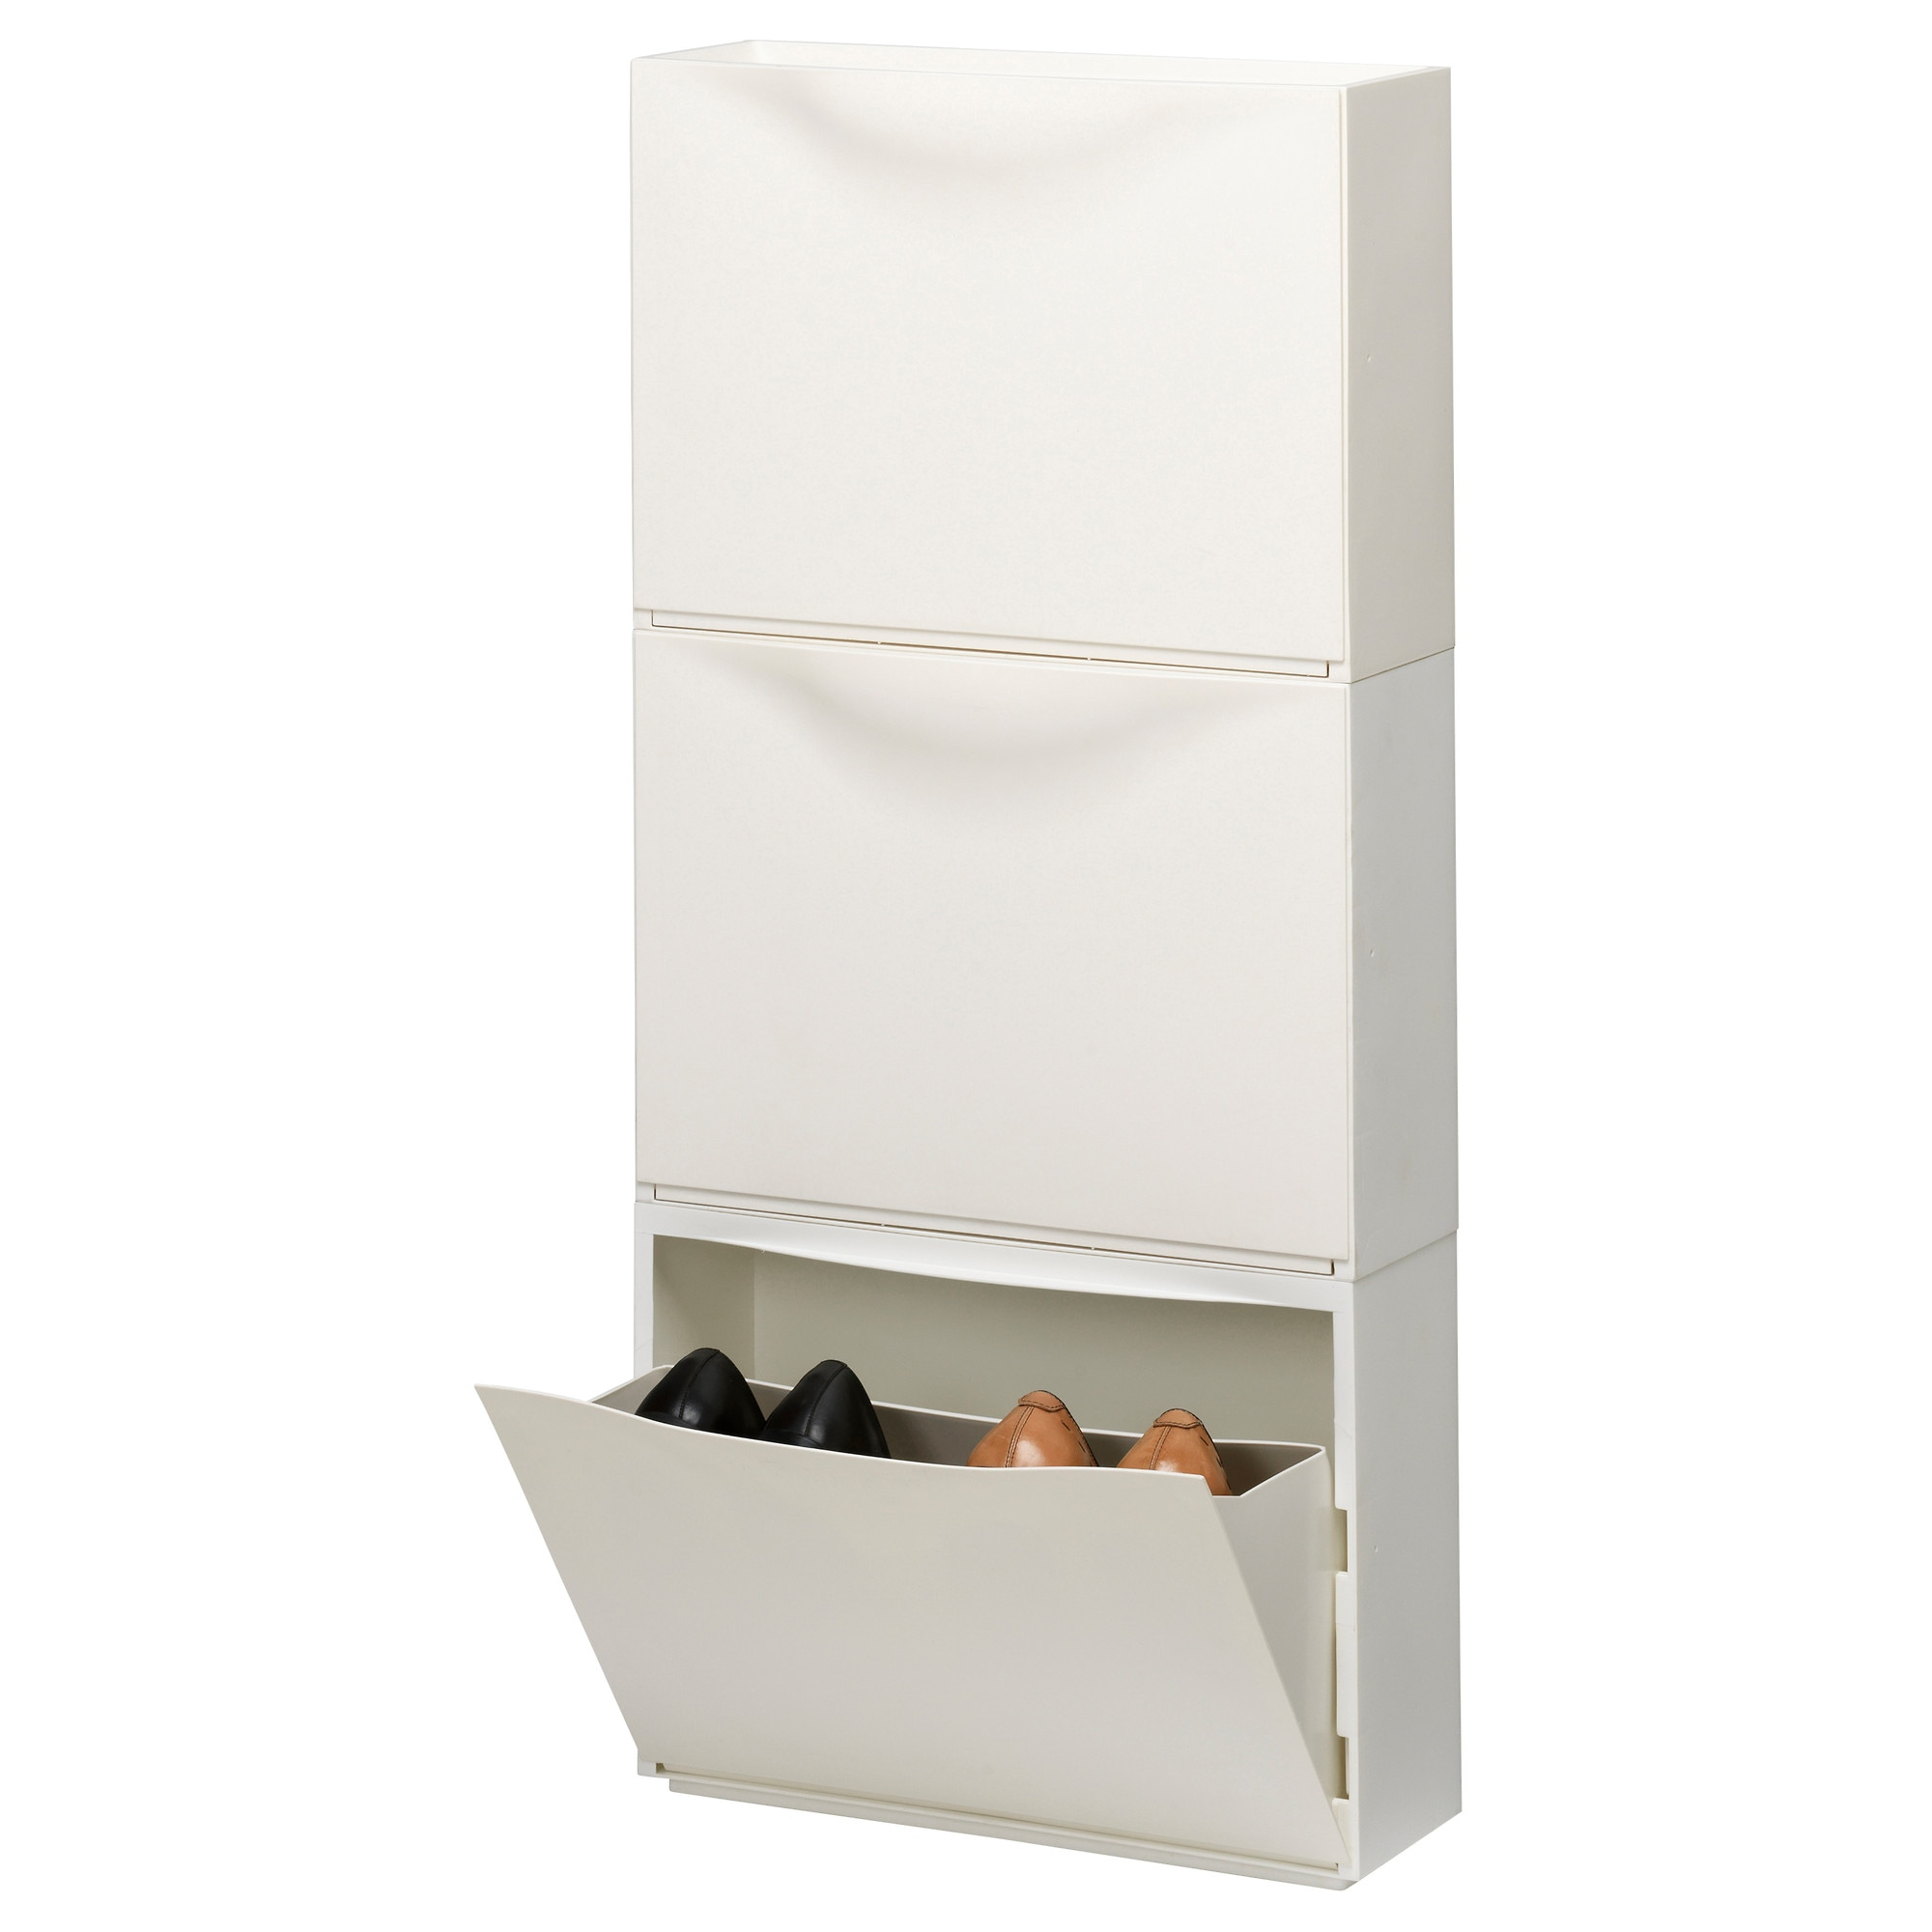 TRONES Shoe/storage cabinet - black - IKEA